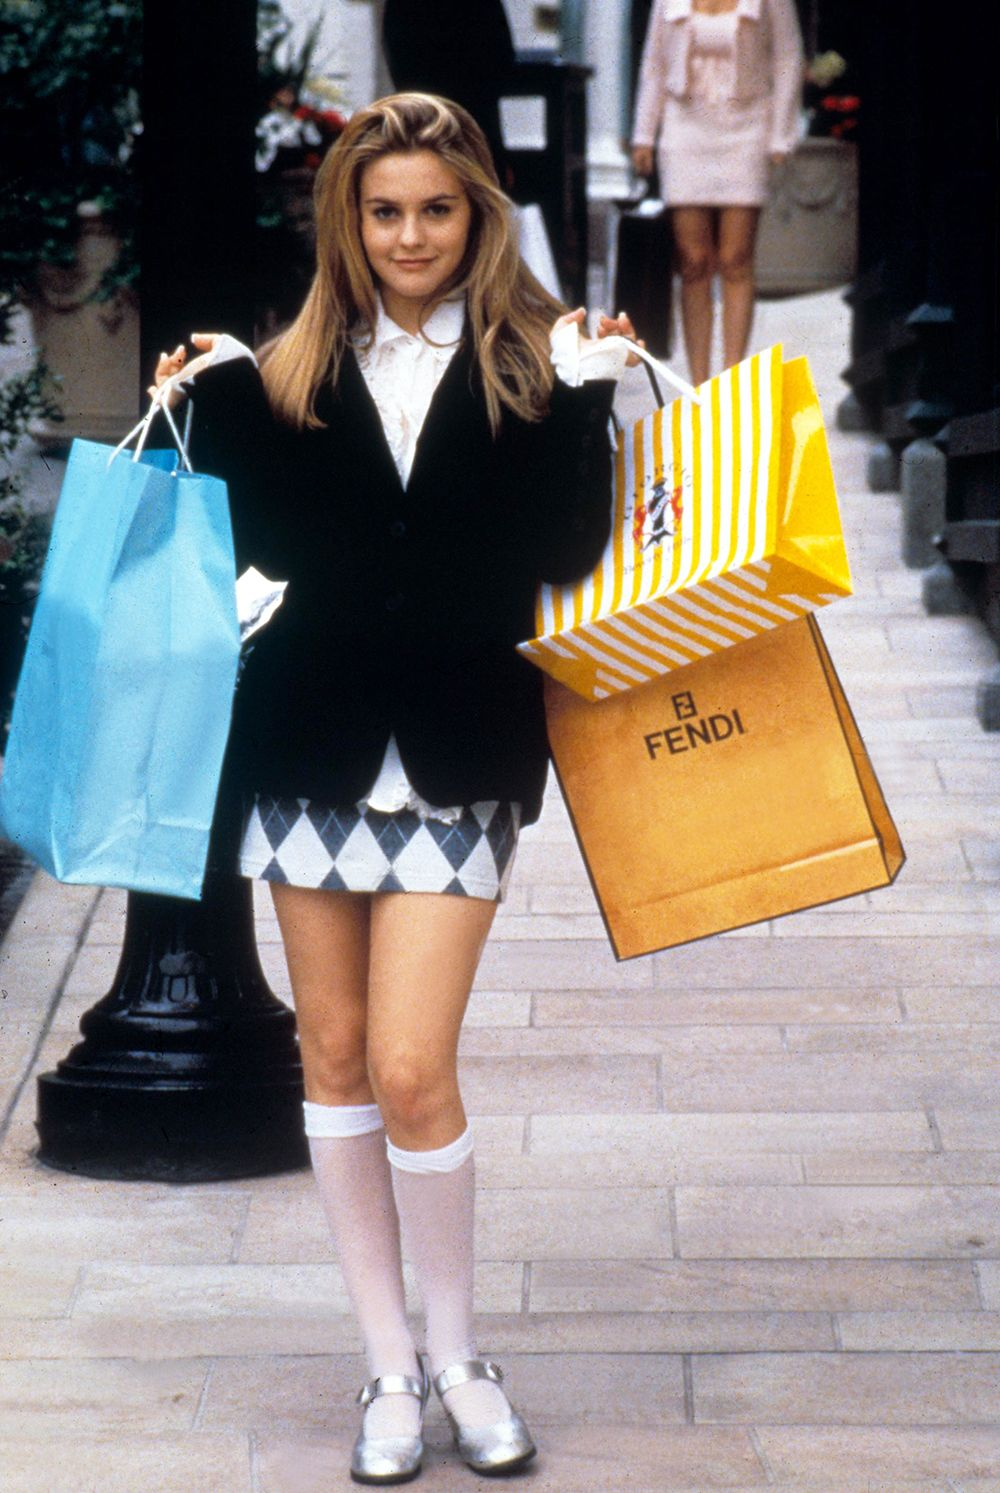 """Clueless (1995) This modern retelling of Jane Austen's Emma centers on Cher (Alicia Silverstone): a superficial, attractive, wealthy 16-year-old in Beverly Hills. She plays matchmaker for teachers and students alike, gets dressed with an interactive carousel of clothing options, and conducts a makeover on a """"tragically unhip"""" new girl."""